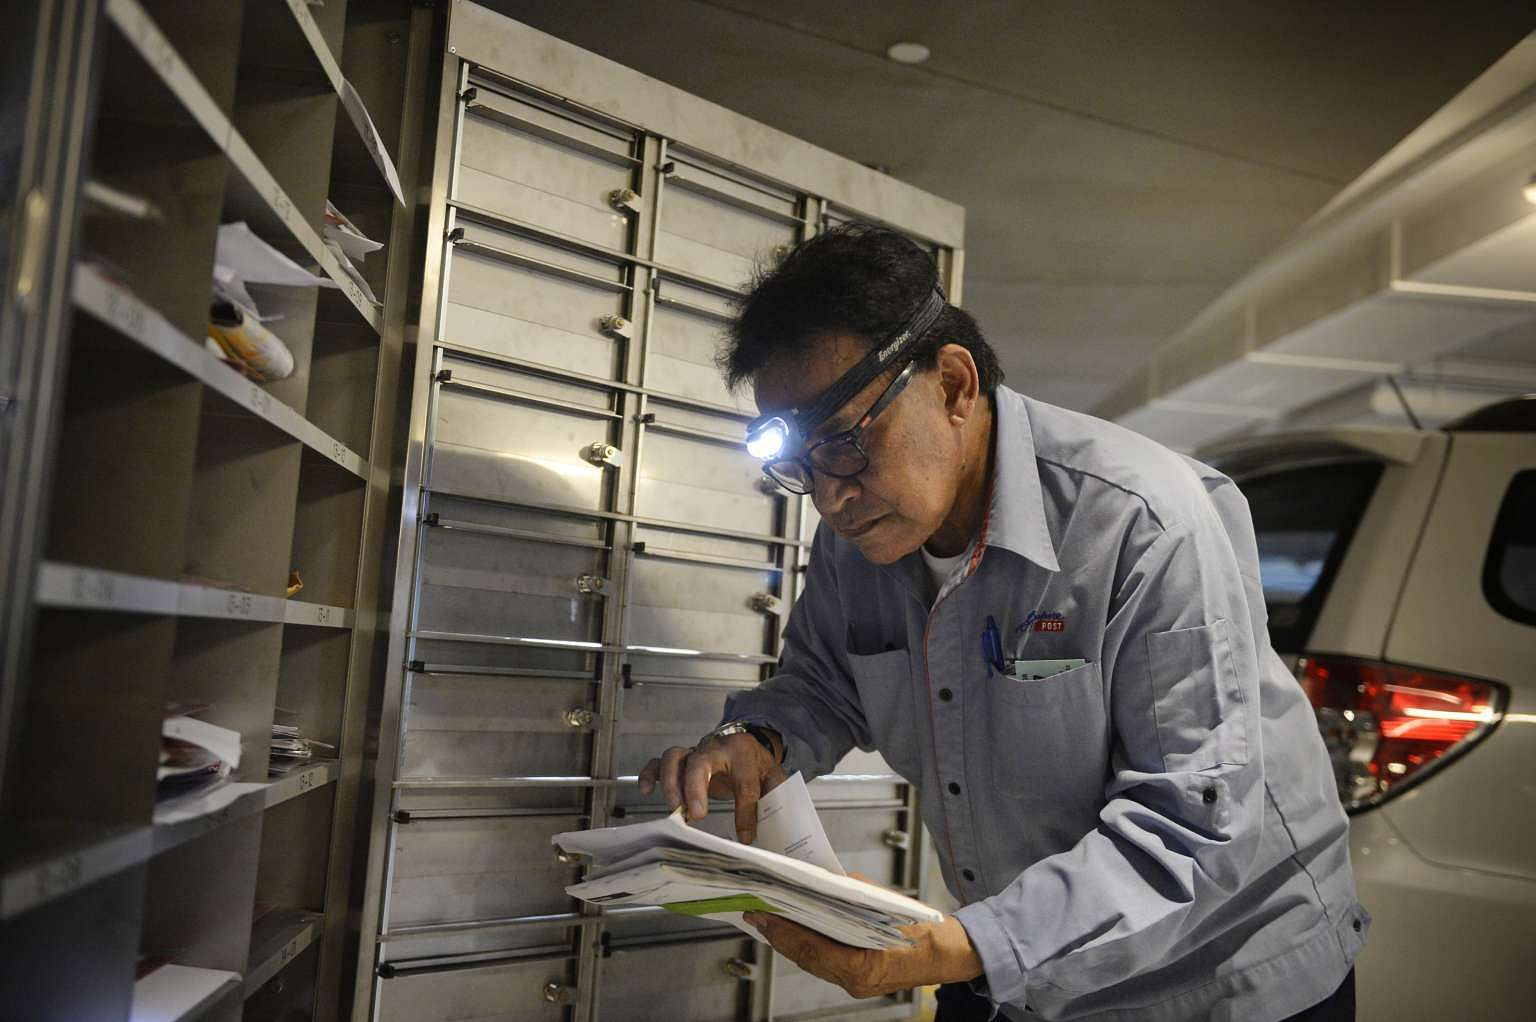 Postman Salim Nahrawi, 69, delivering letters at a building in Tanjong Pagar. The head light helps improve visibility.